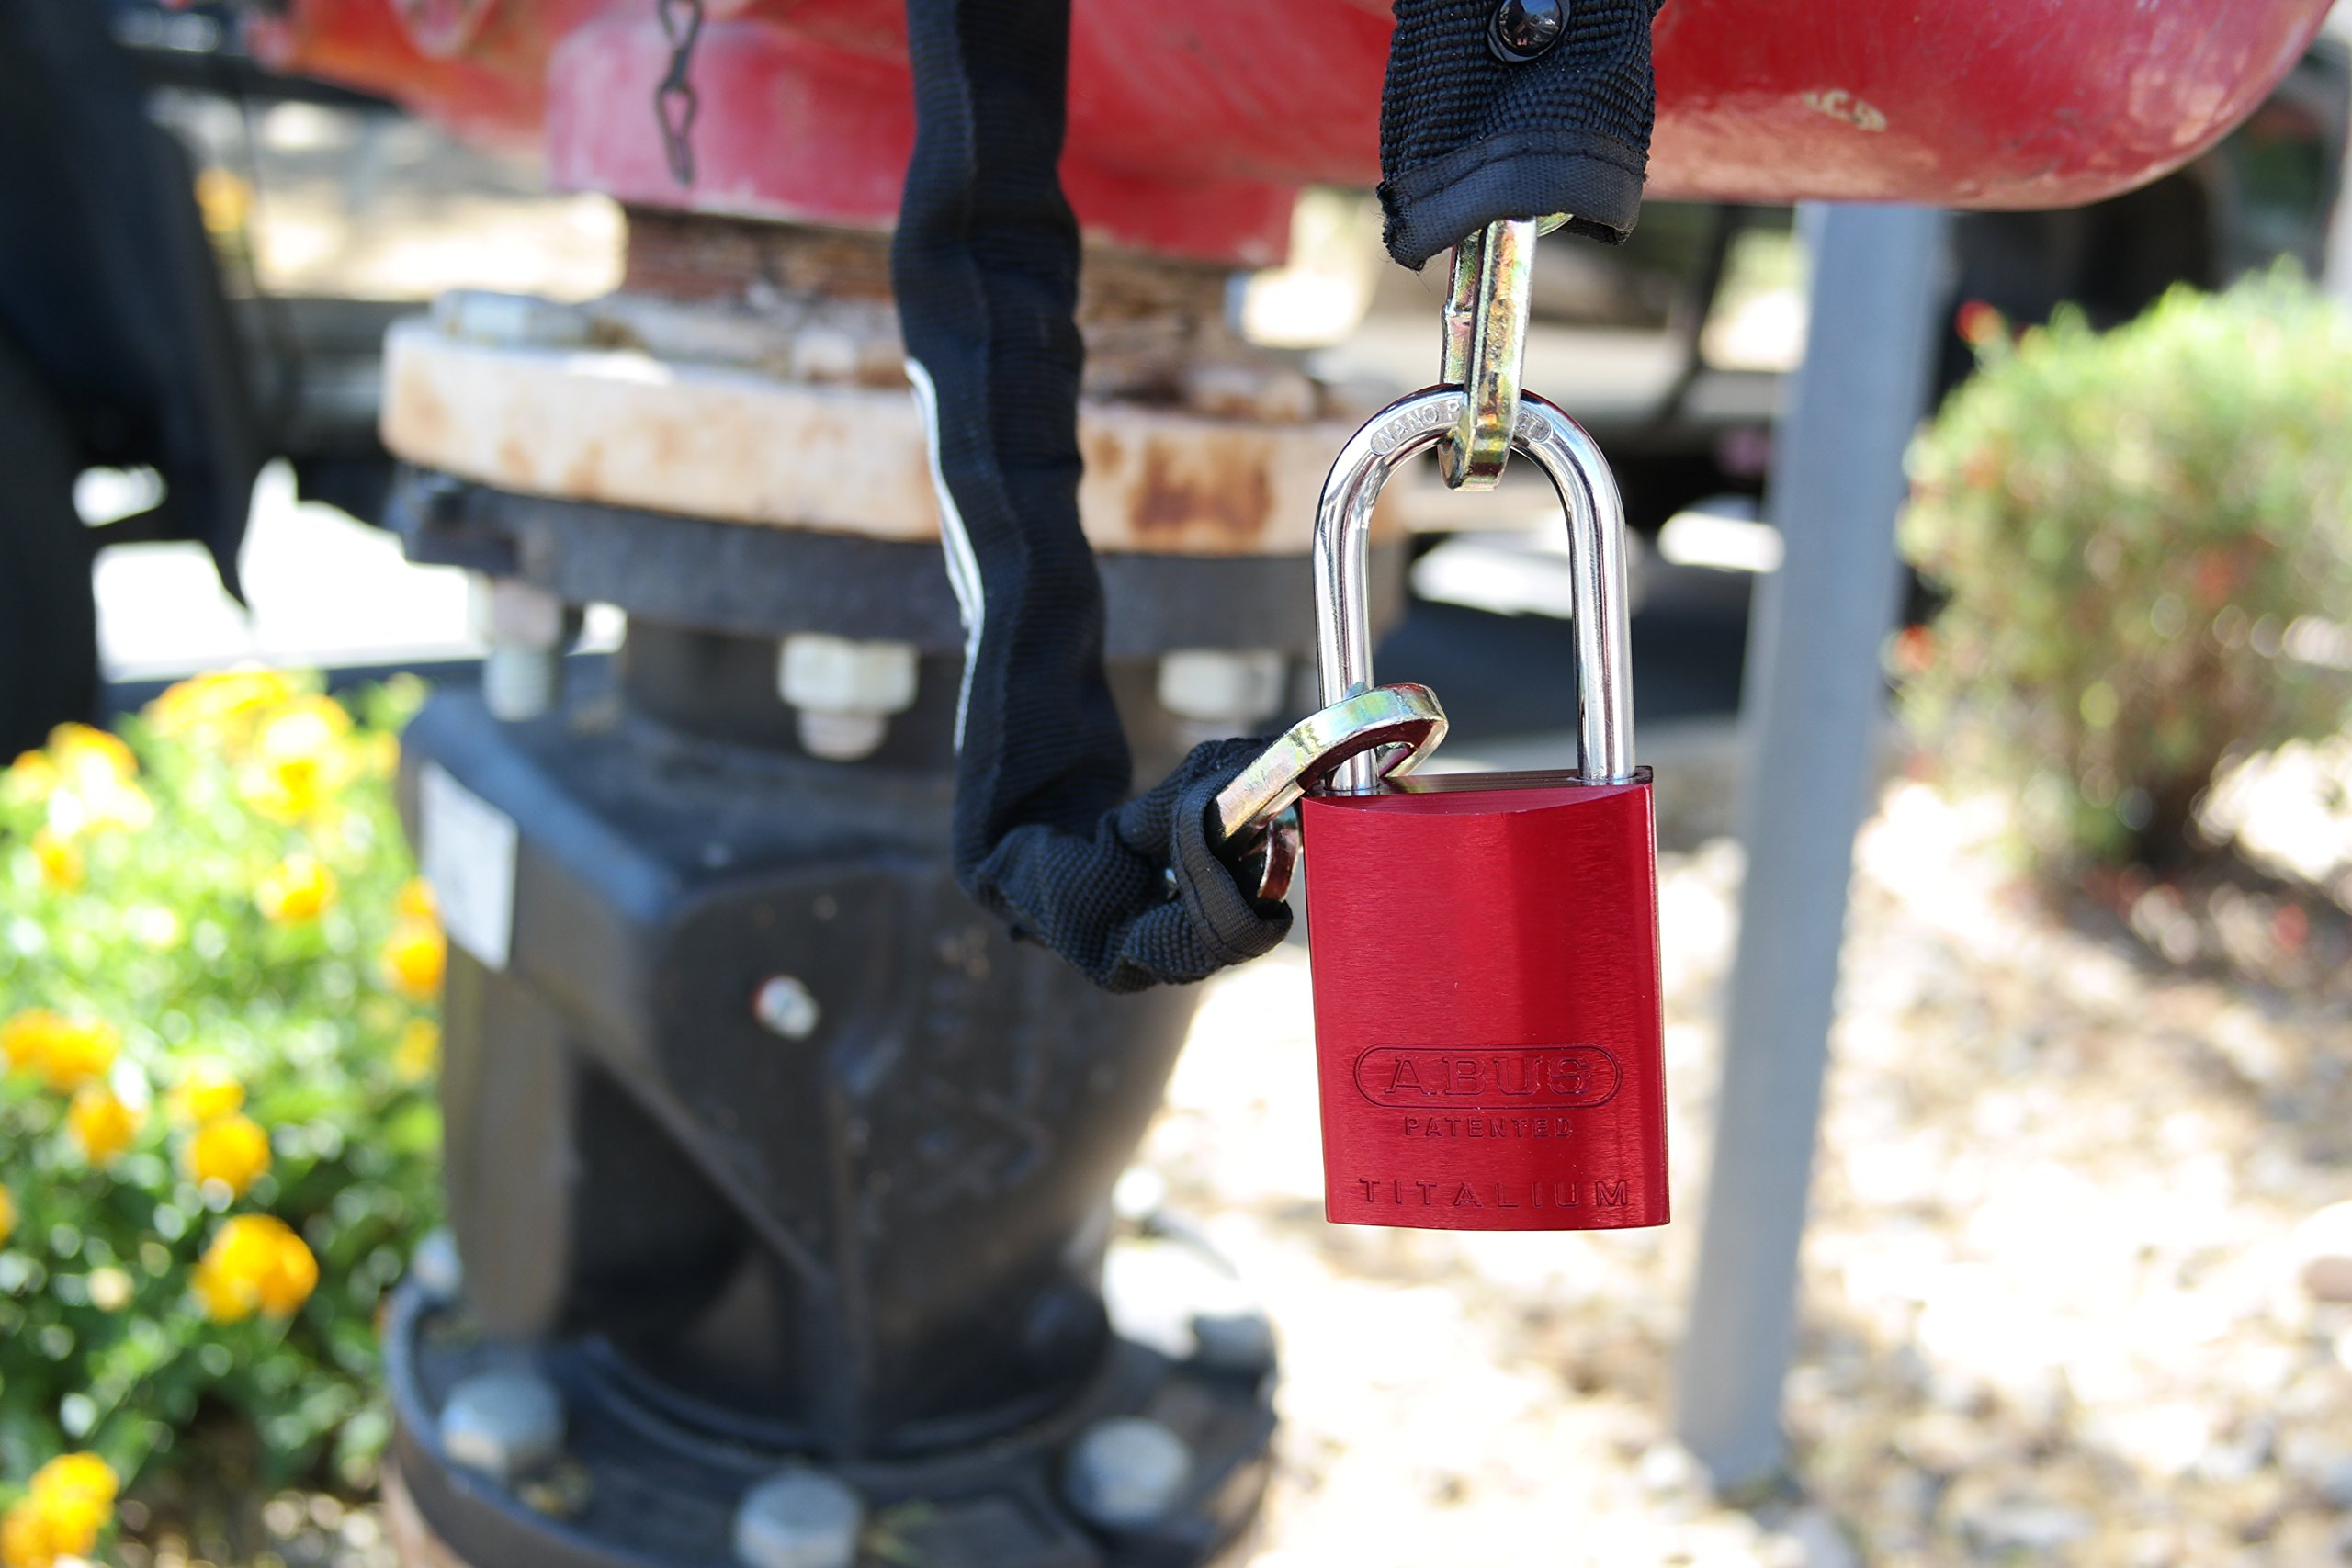 ABUS 83AL-IC/40 S2 SFIC Small Format Interchangeable Core Aluminum Rekeyable Padlock w/o core with 1.5-Inch Shackle, Red